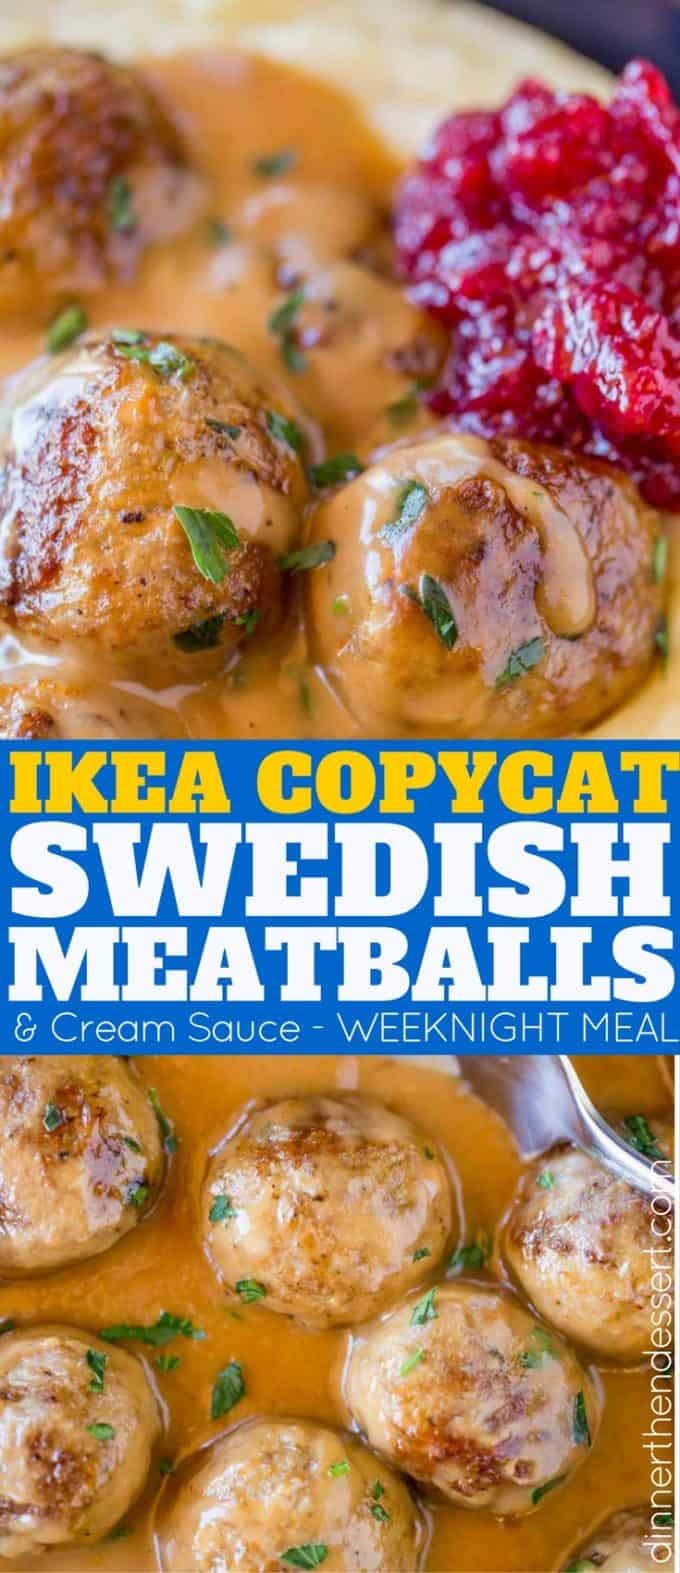 Swedish Meatballs like you'll find in Ikea, but without the trip to the store. Served with the creamy beef gravy, you'll LOVE this easy weeknight meal.